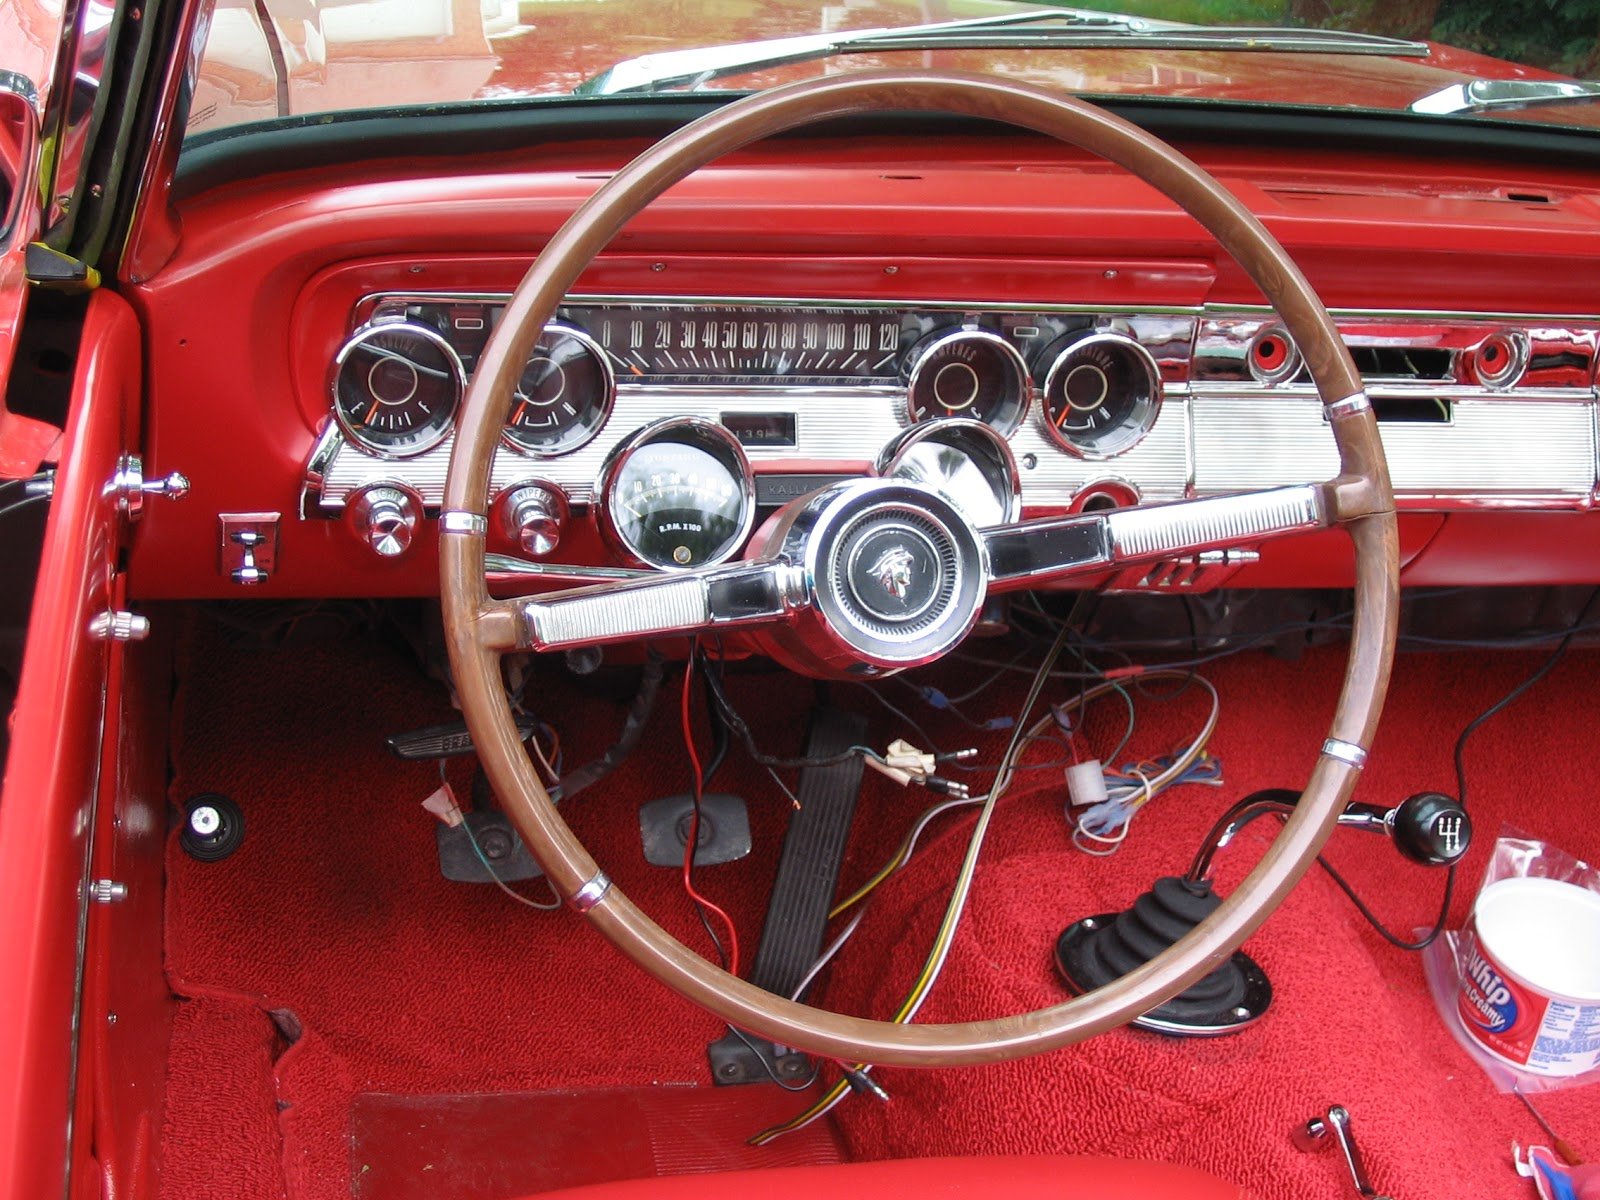 64 Comet Interior – Wonderful Image Gallery